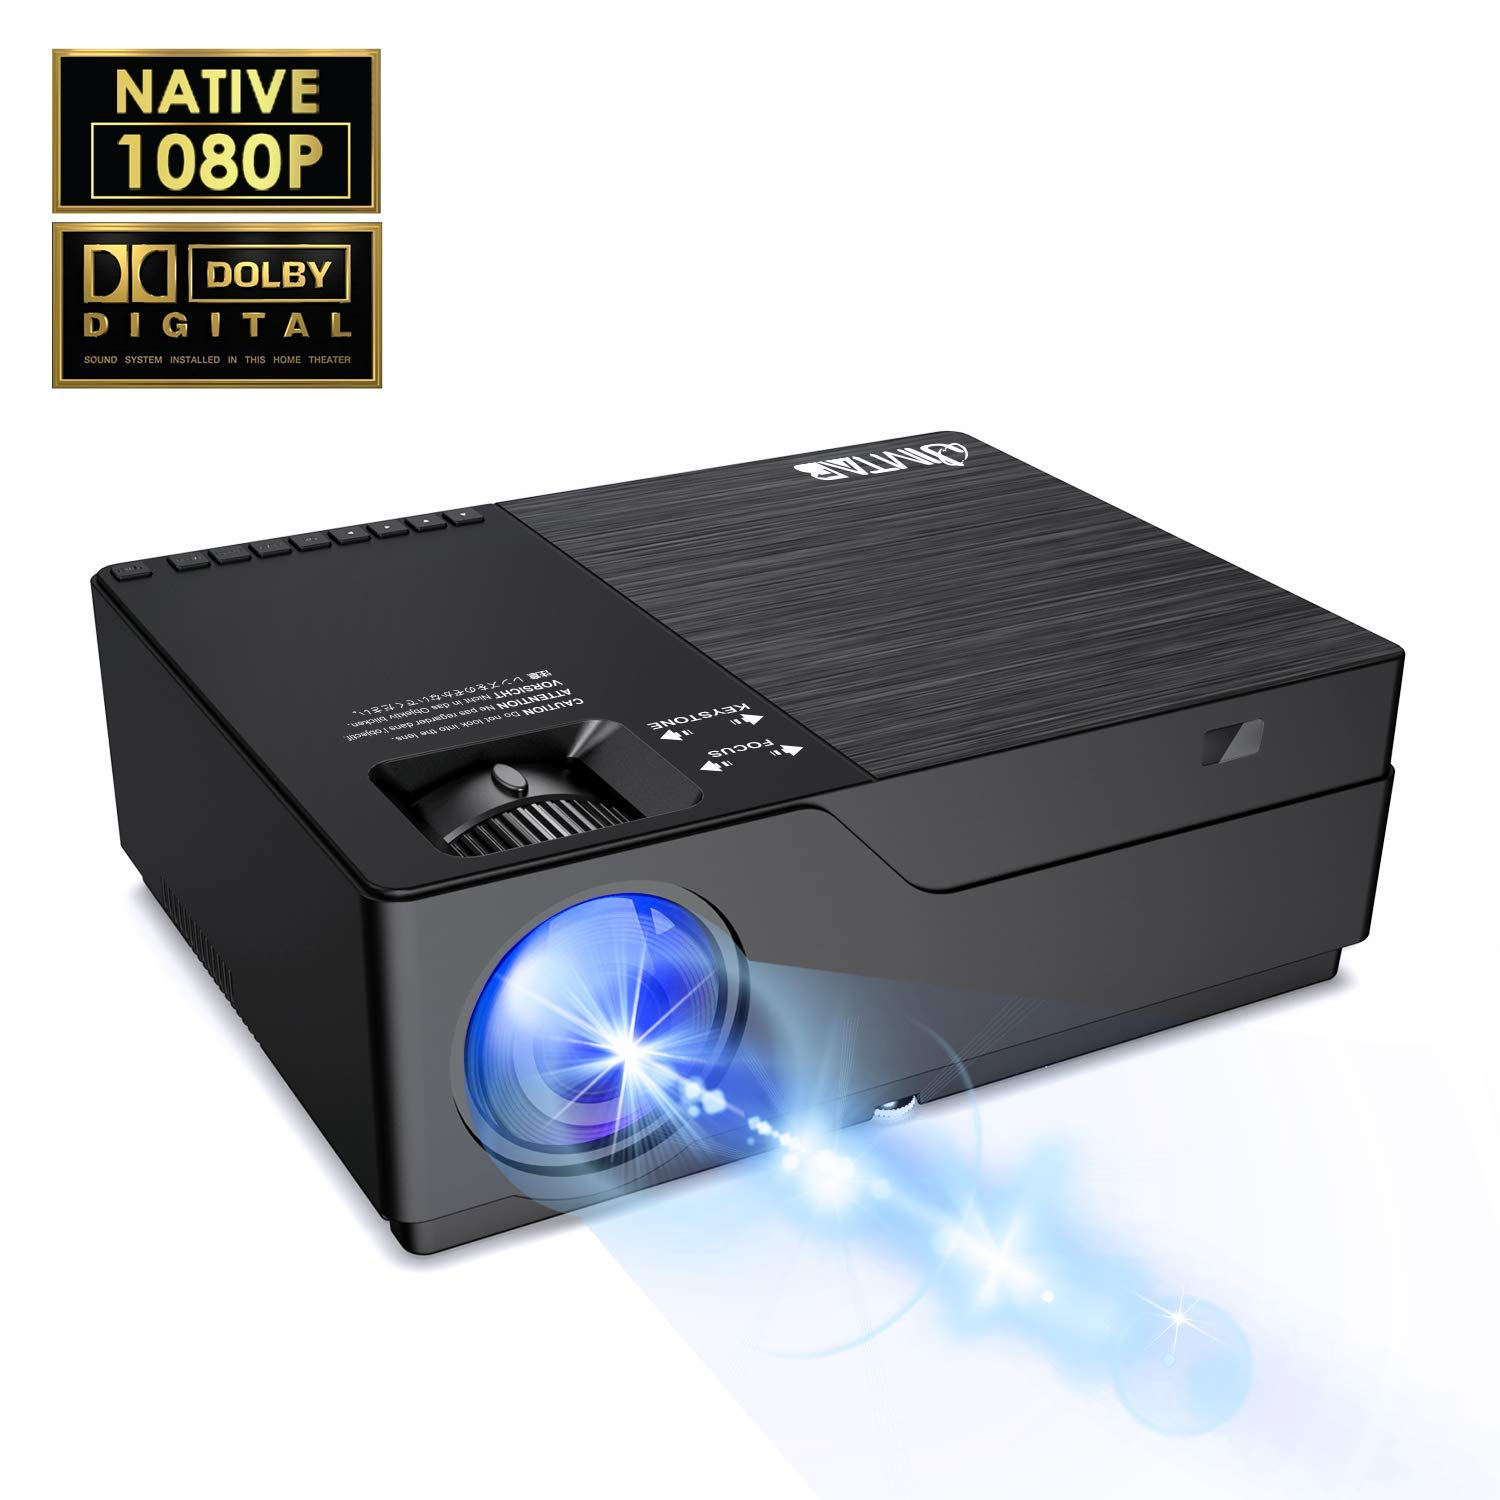 "JIMTAB M18 Native 1080P LED & Video Projector, 4500 Lux HD Projector with 300""Display Support AV,VGA,USB,HDMI, Compatible with Xbox,Laptop,iPhone and Android for Academic Display (Dark Star)"